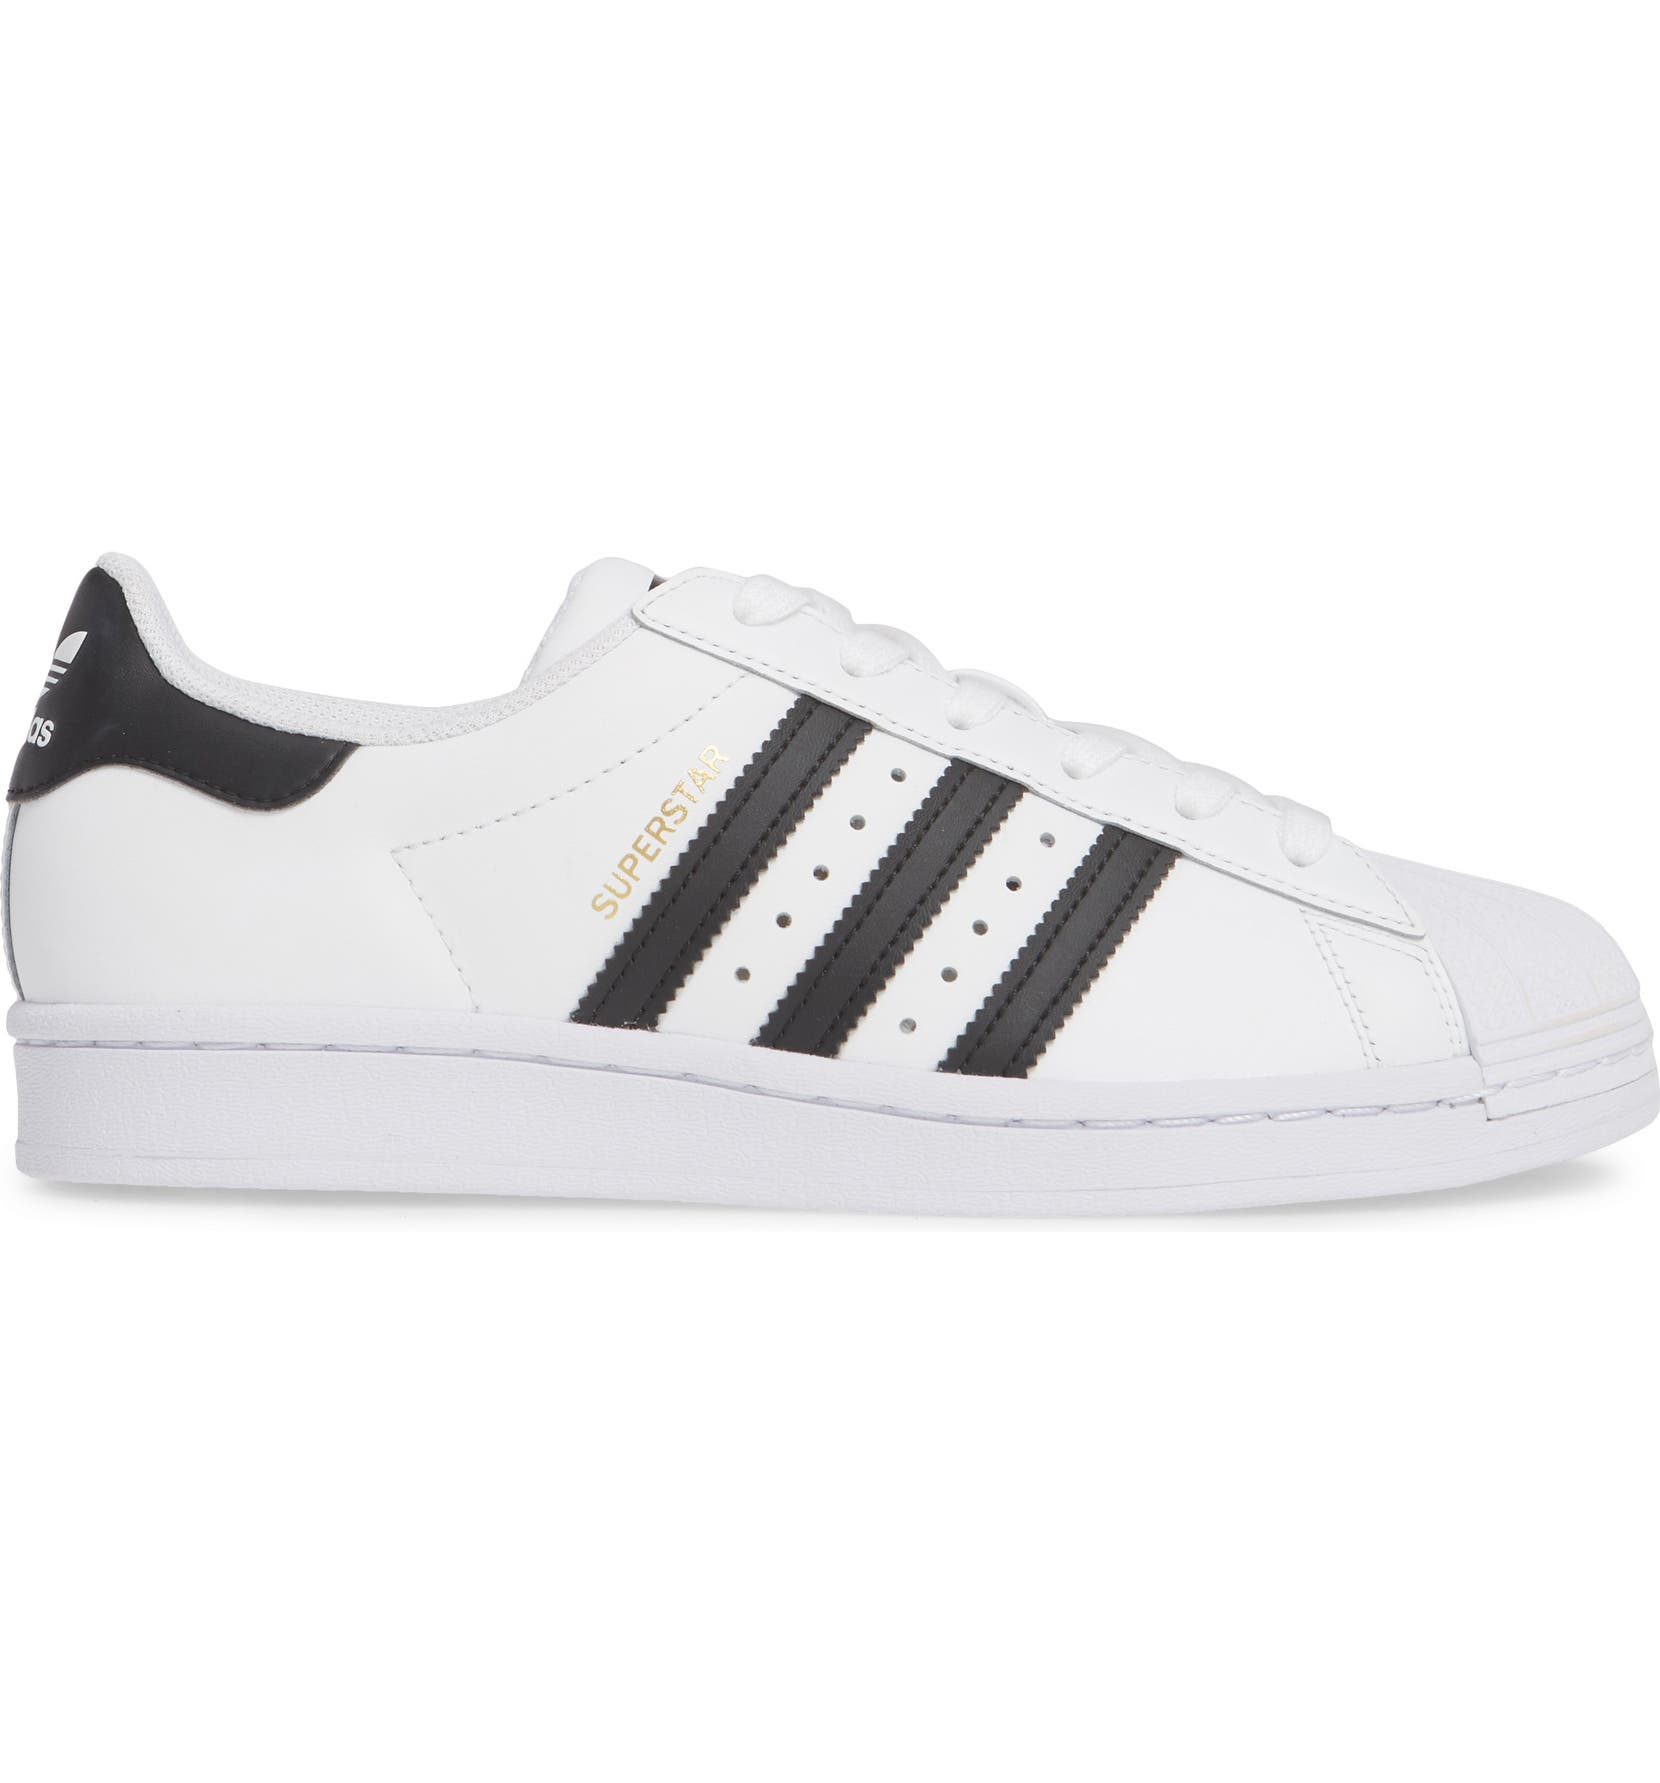 adidas superstar womens black and white size 5